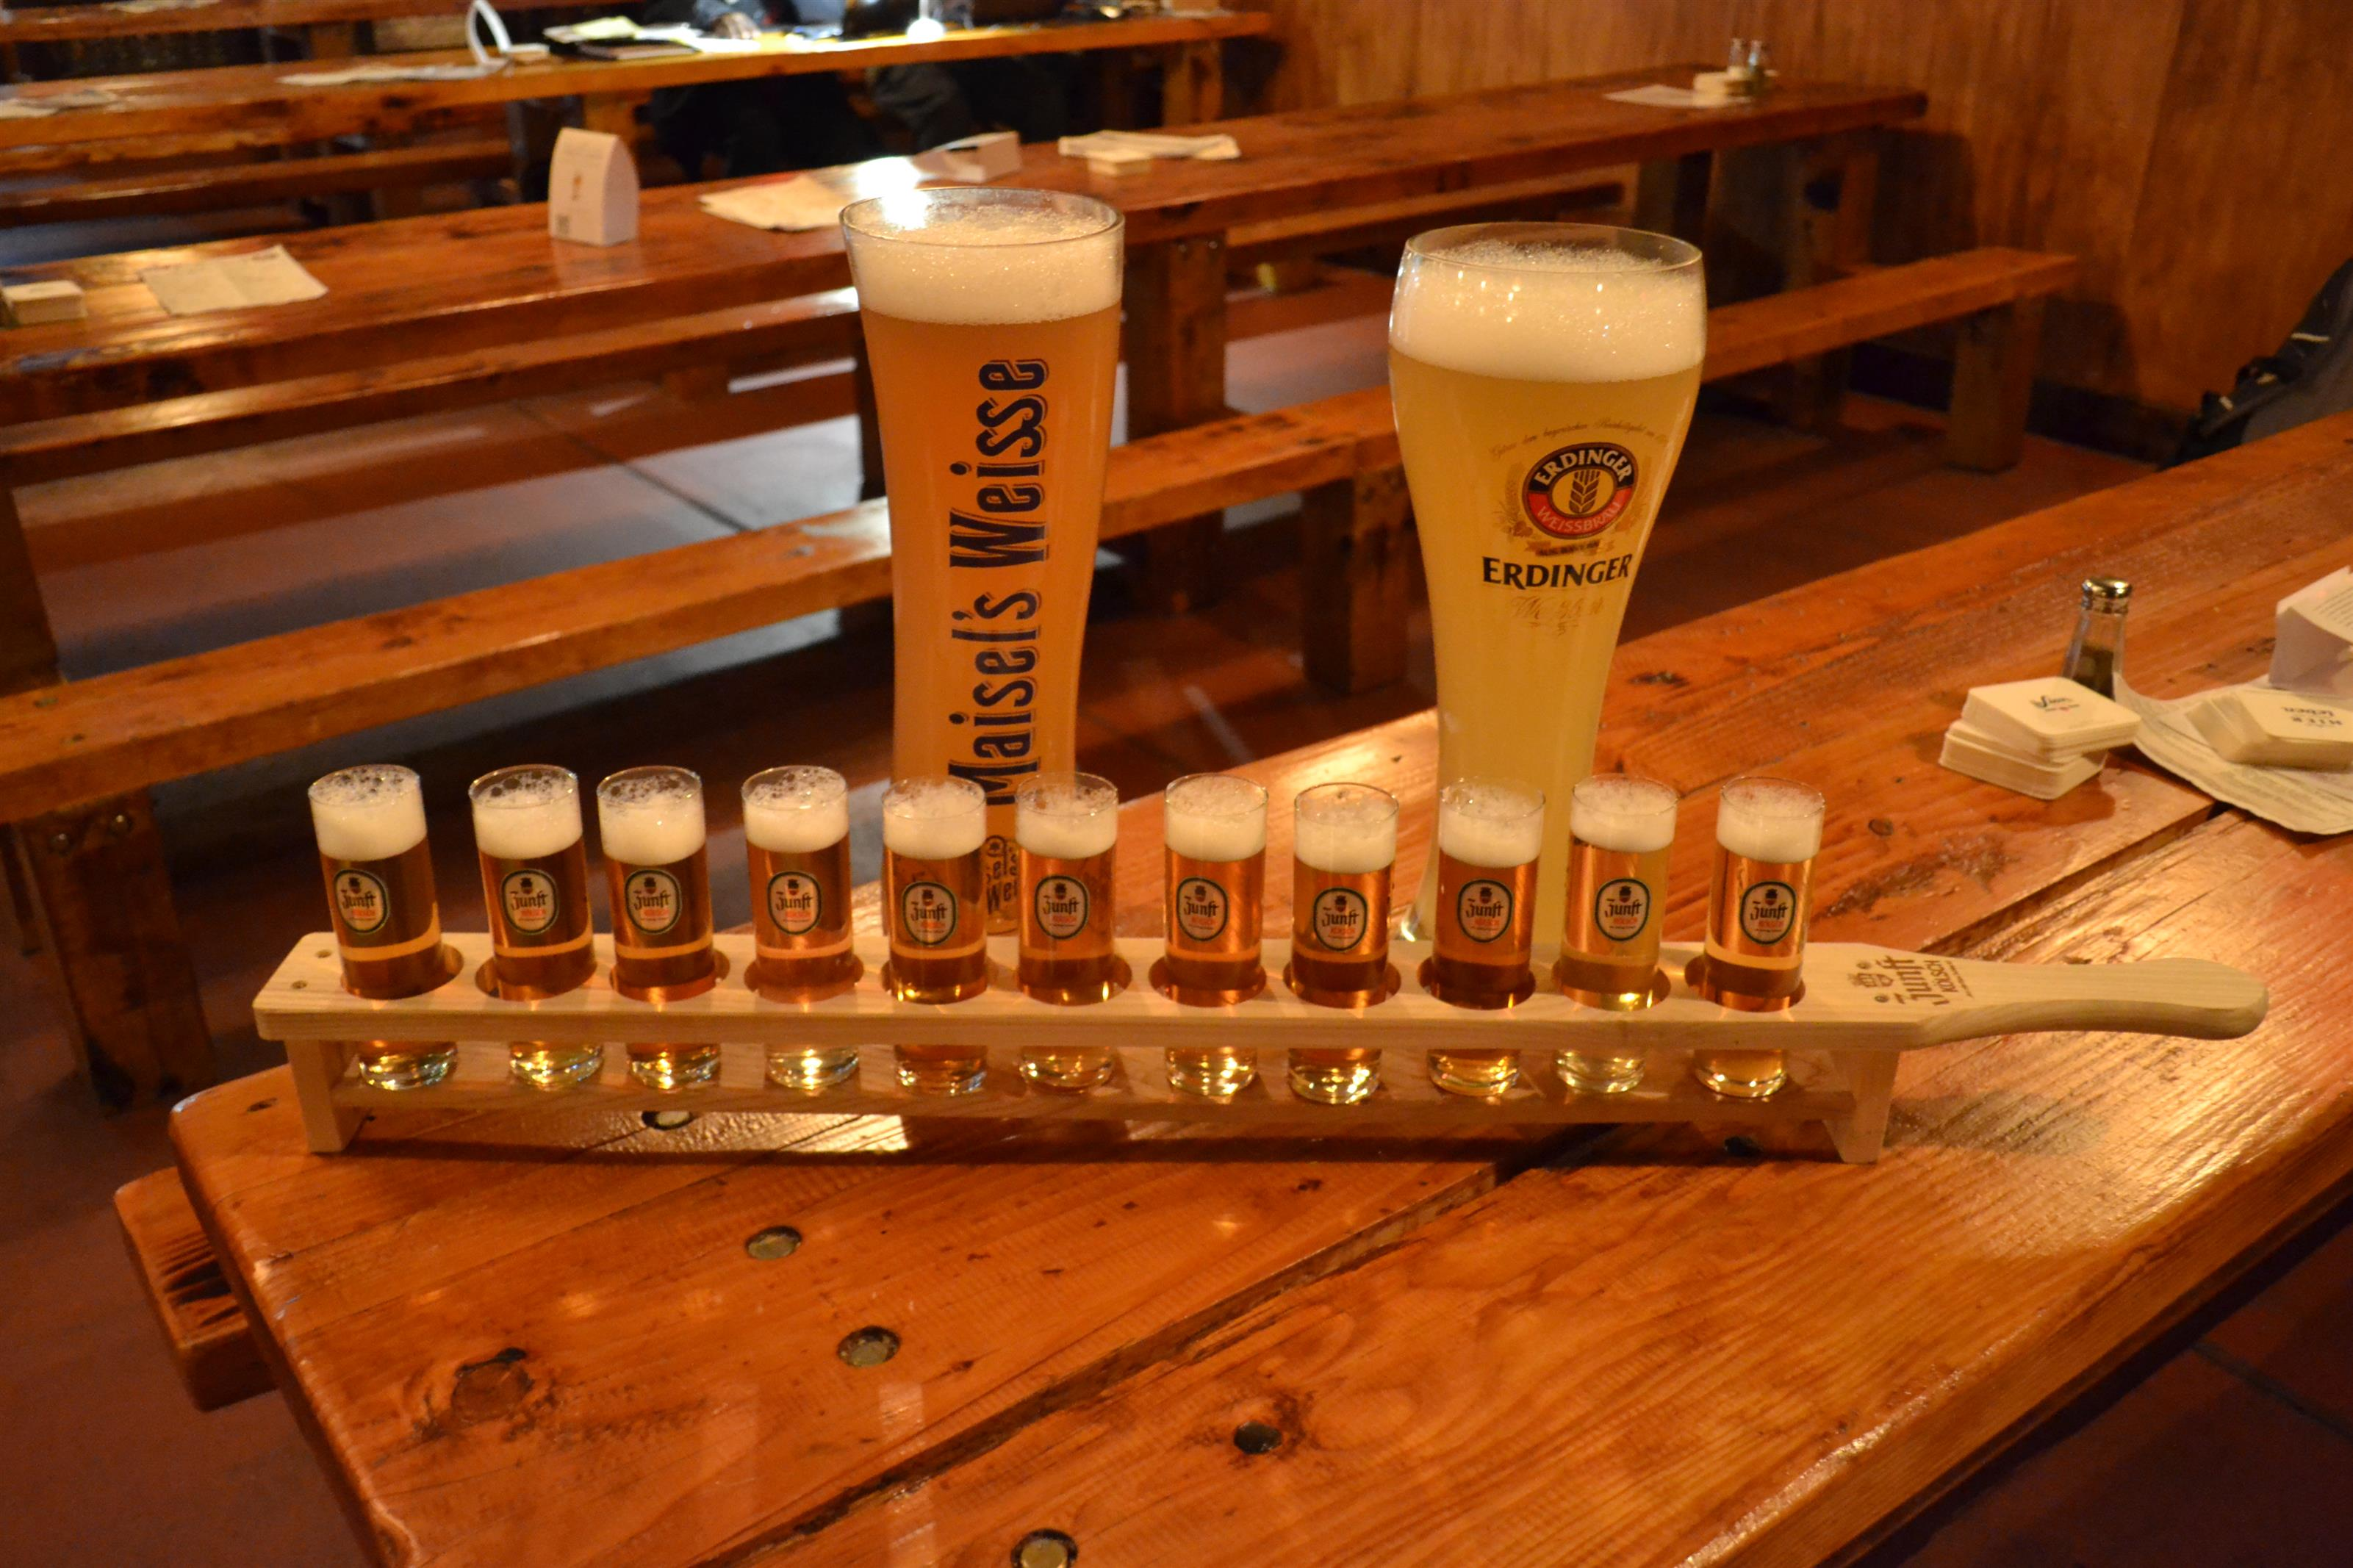 A flight of light beers with two large beer steins filled with beer on a wooden table-top